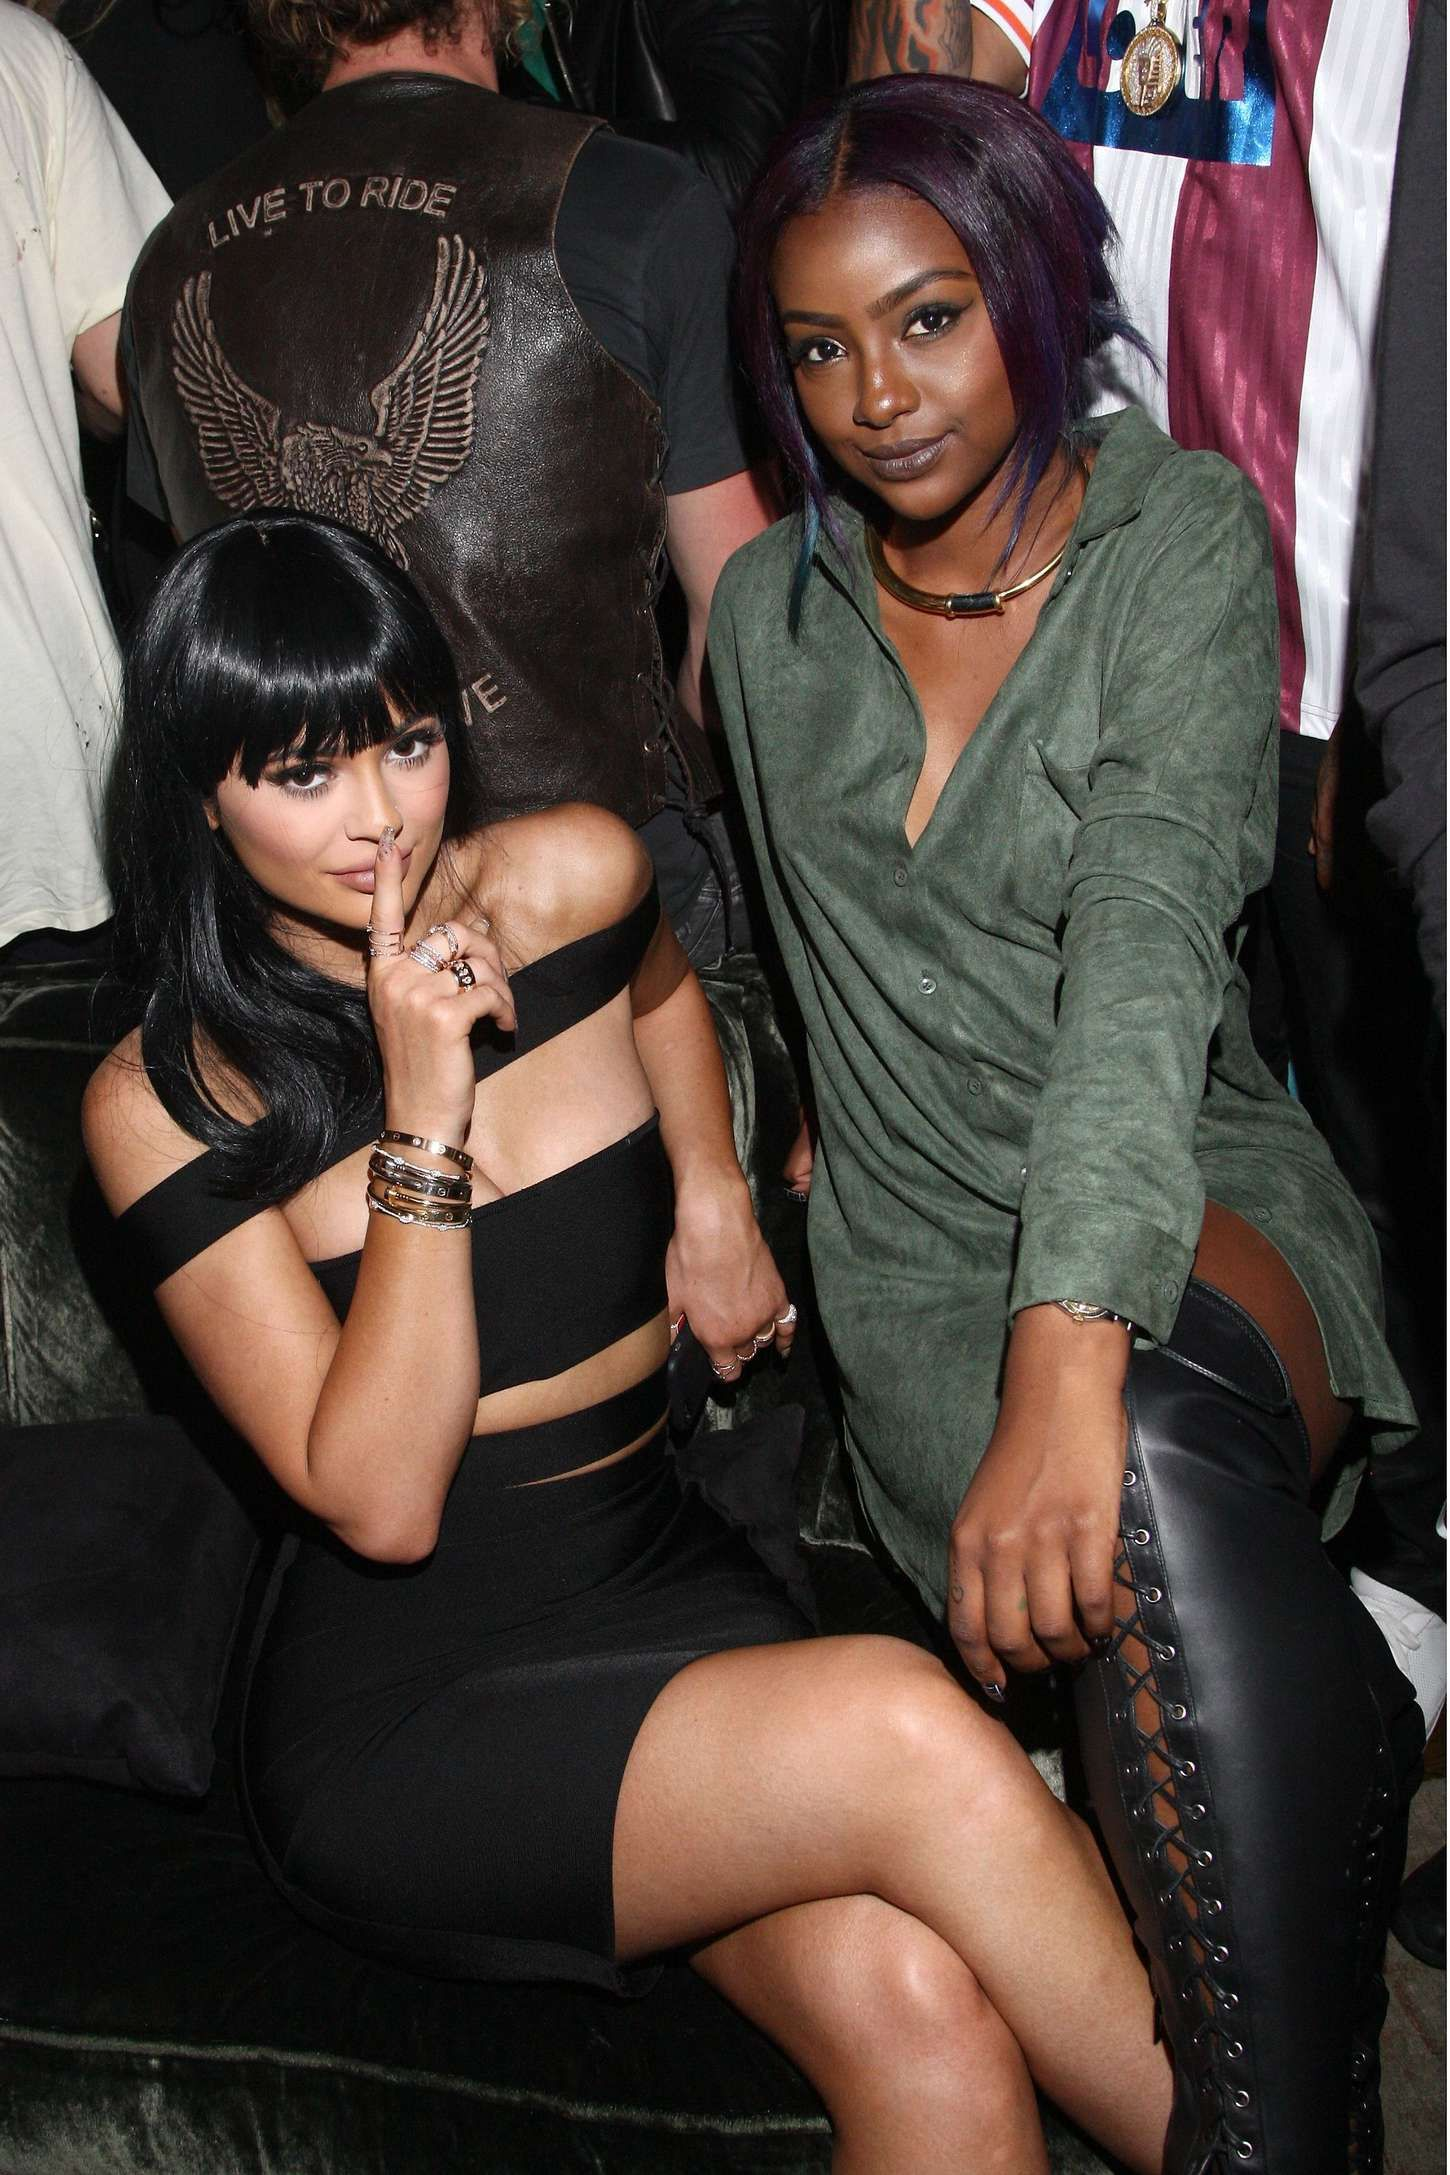 Kylie-Jenner-at-Republic-Records-VMA-After-Party-6